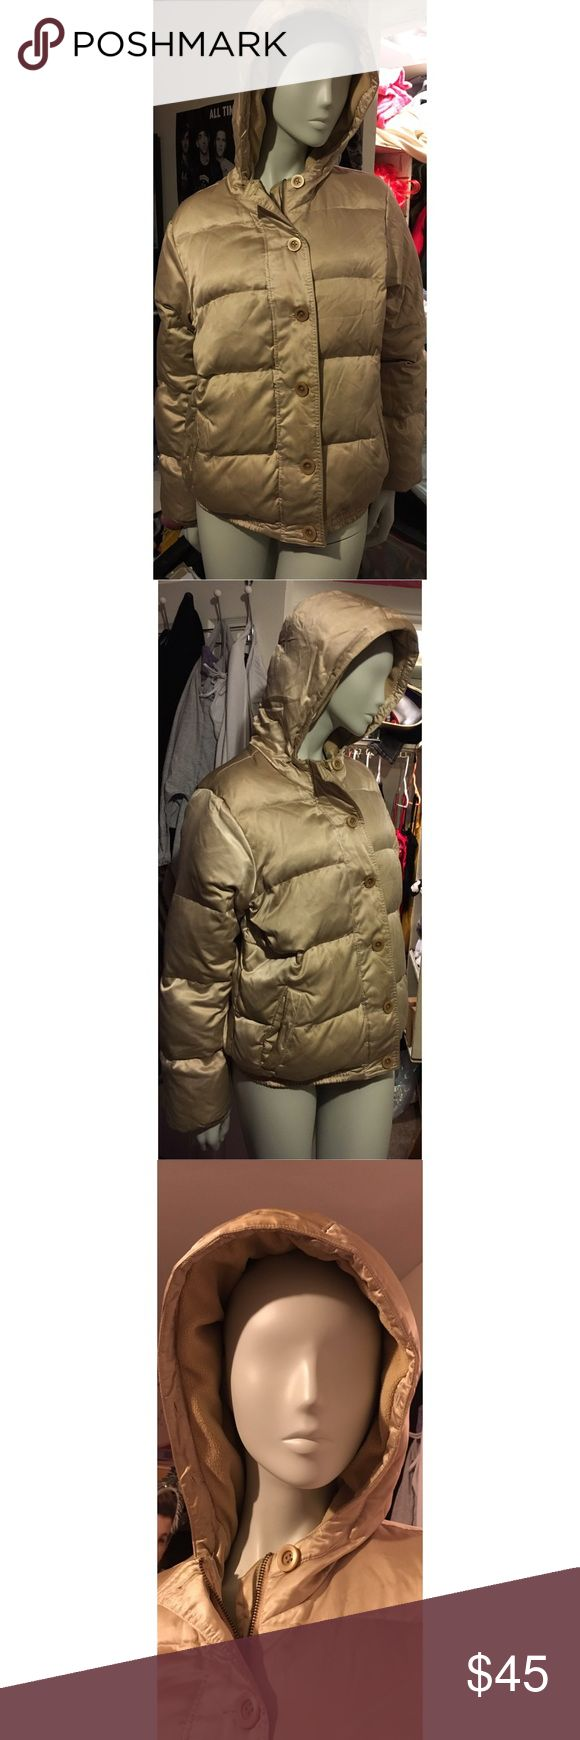 Champagne winter Puffer jacket Champagne colored. All buttons and zipper work well. It's a little beaten up but nothing a good trip the the dry cleaners can't fix. Old Navy Jackets & Coats Puffers